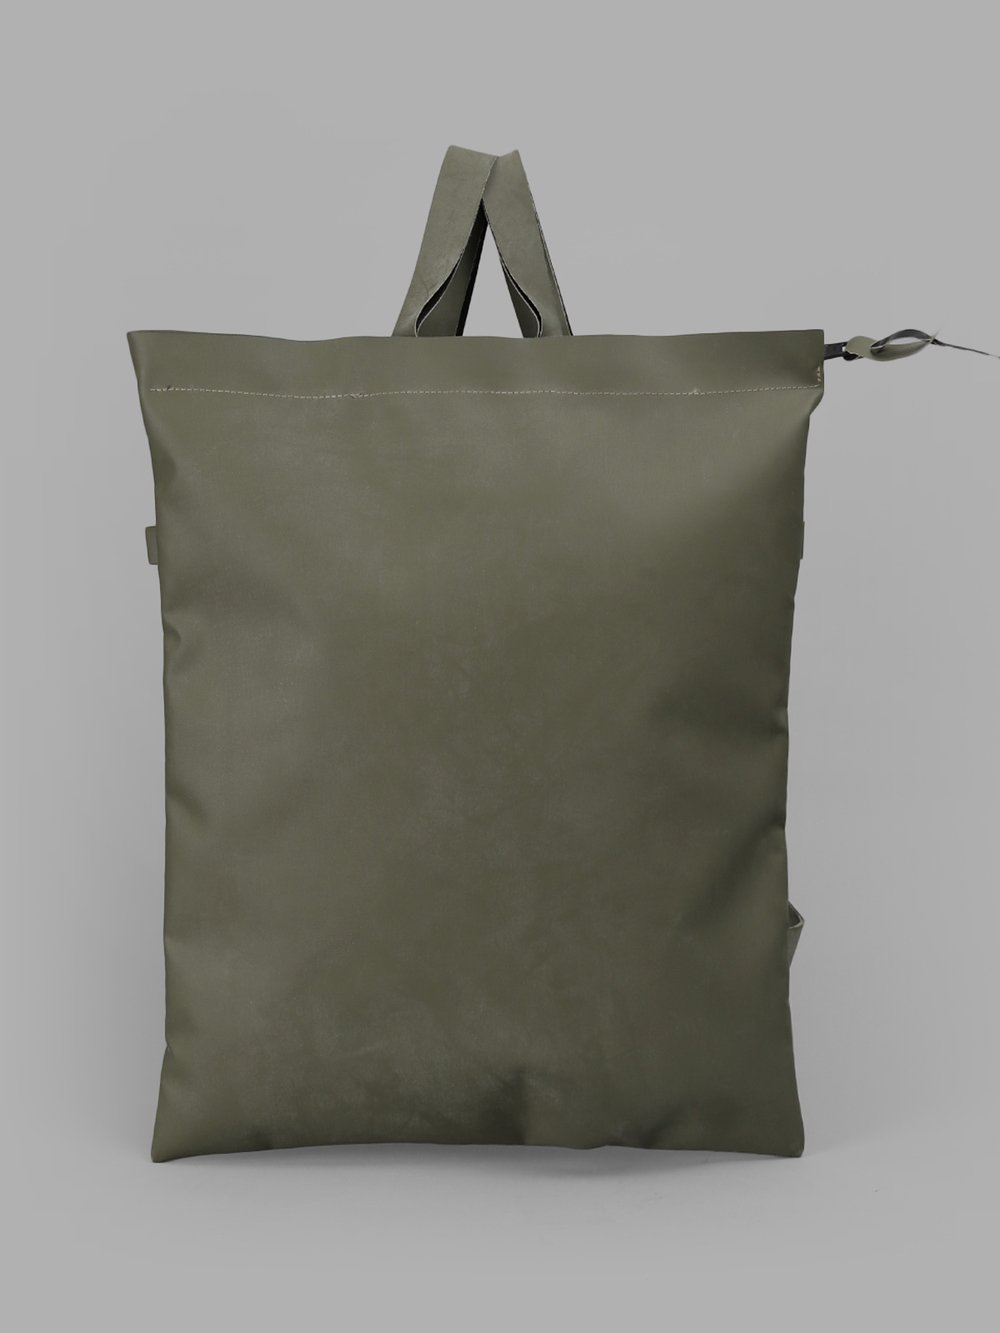 DELLE COSE Delle Cose Green Bakcpack Made Out Of Original Military Rubber